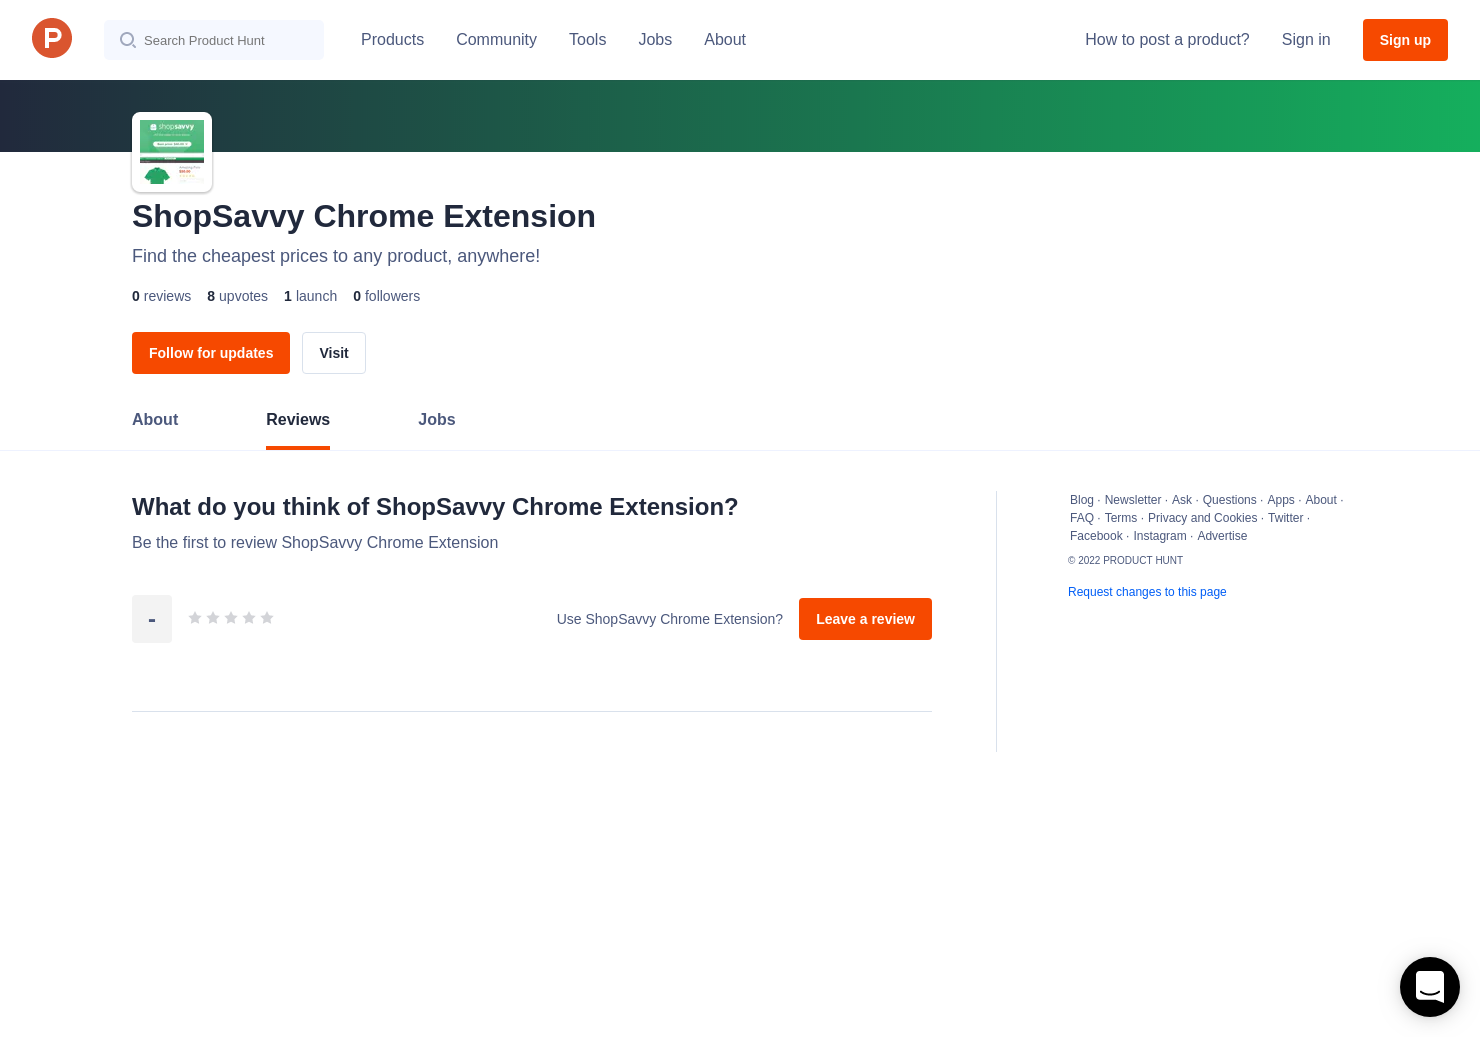 ShopSavvy Chrome Extension Reviews - Pros, Cons and Rating